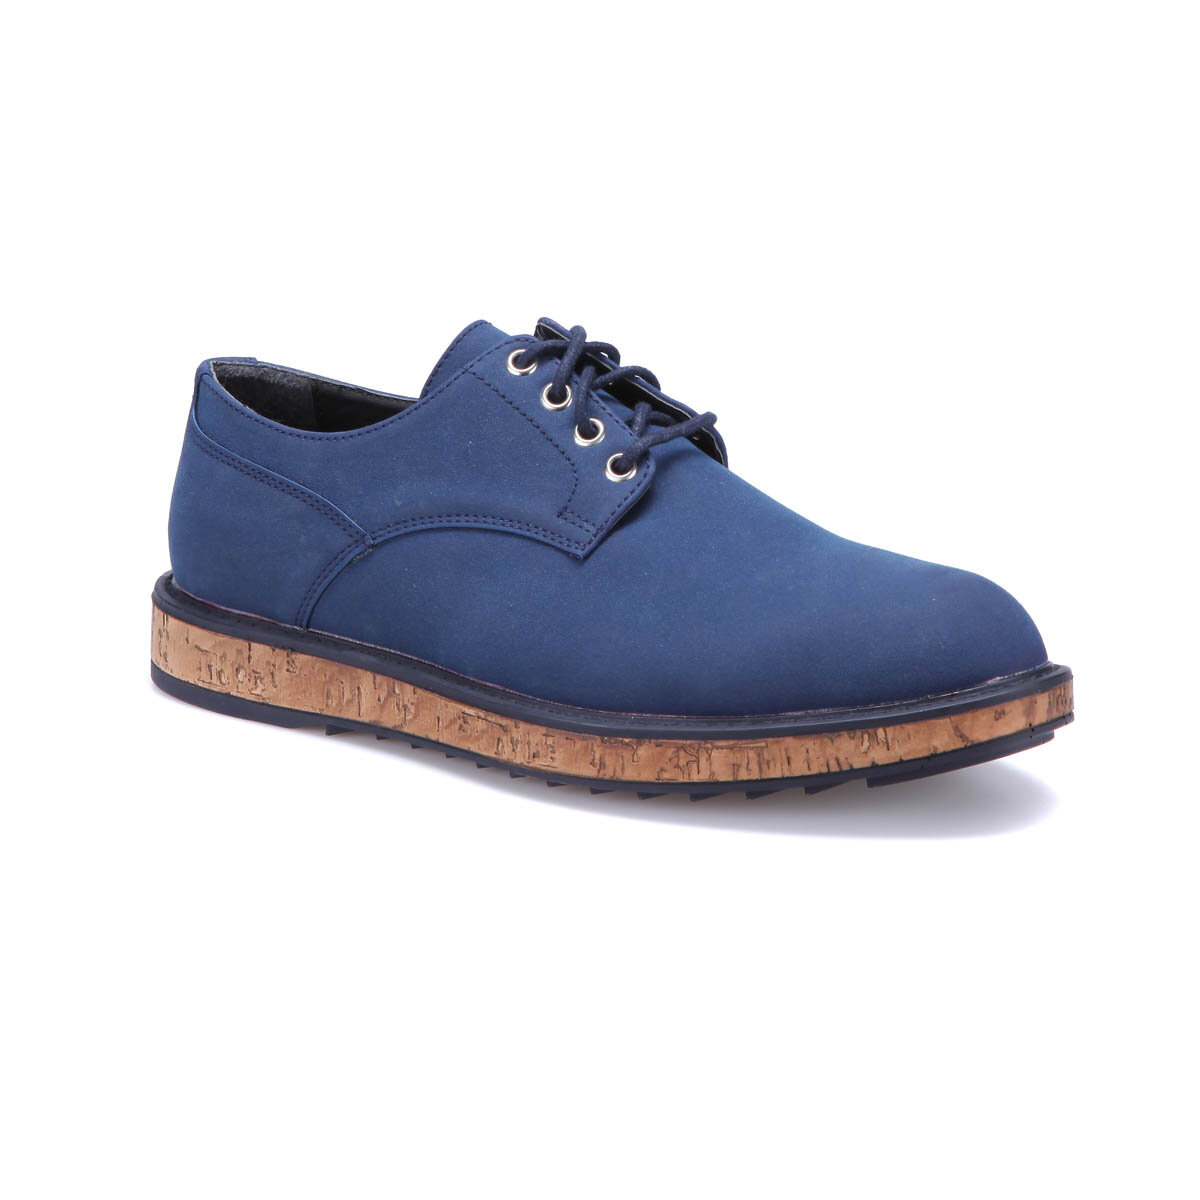 FLO VT-1 Navy Blue Men 'S Modern Shoes JJ-Stiller